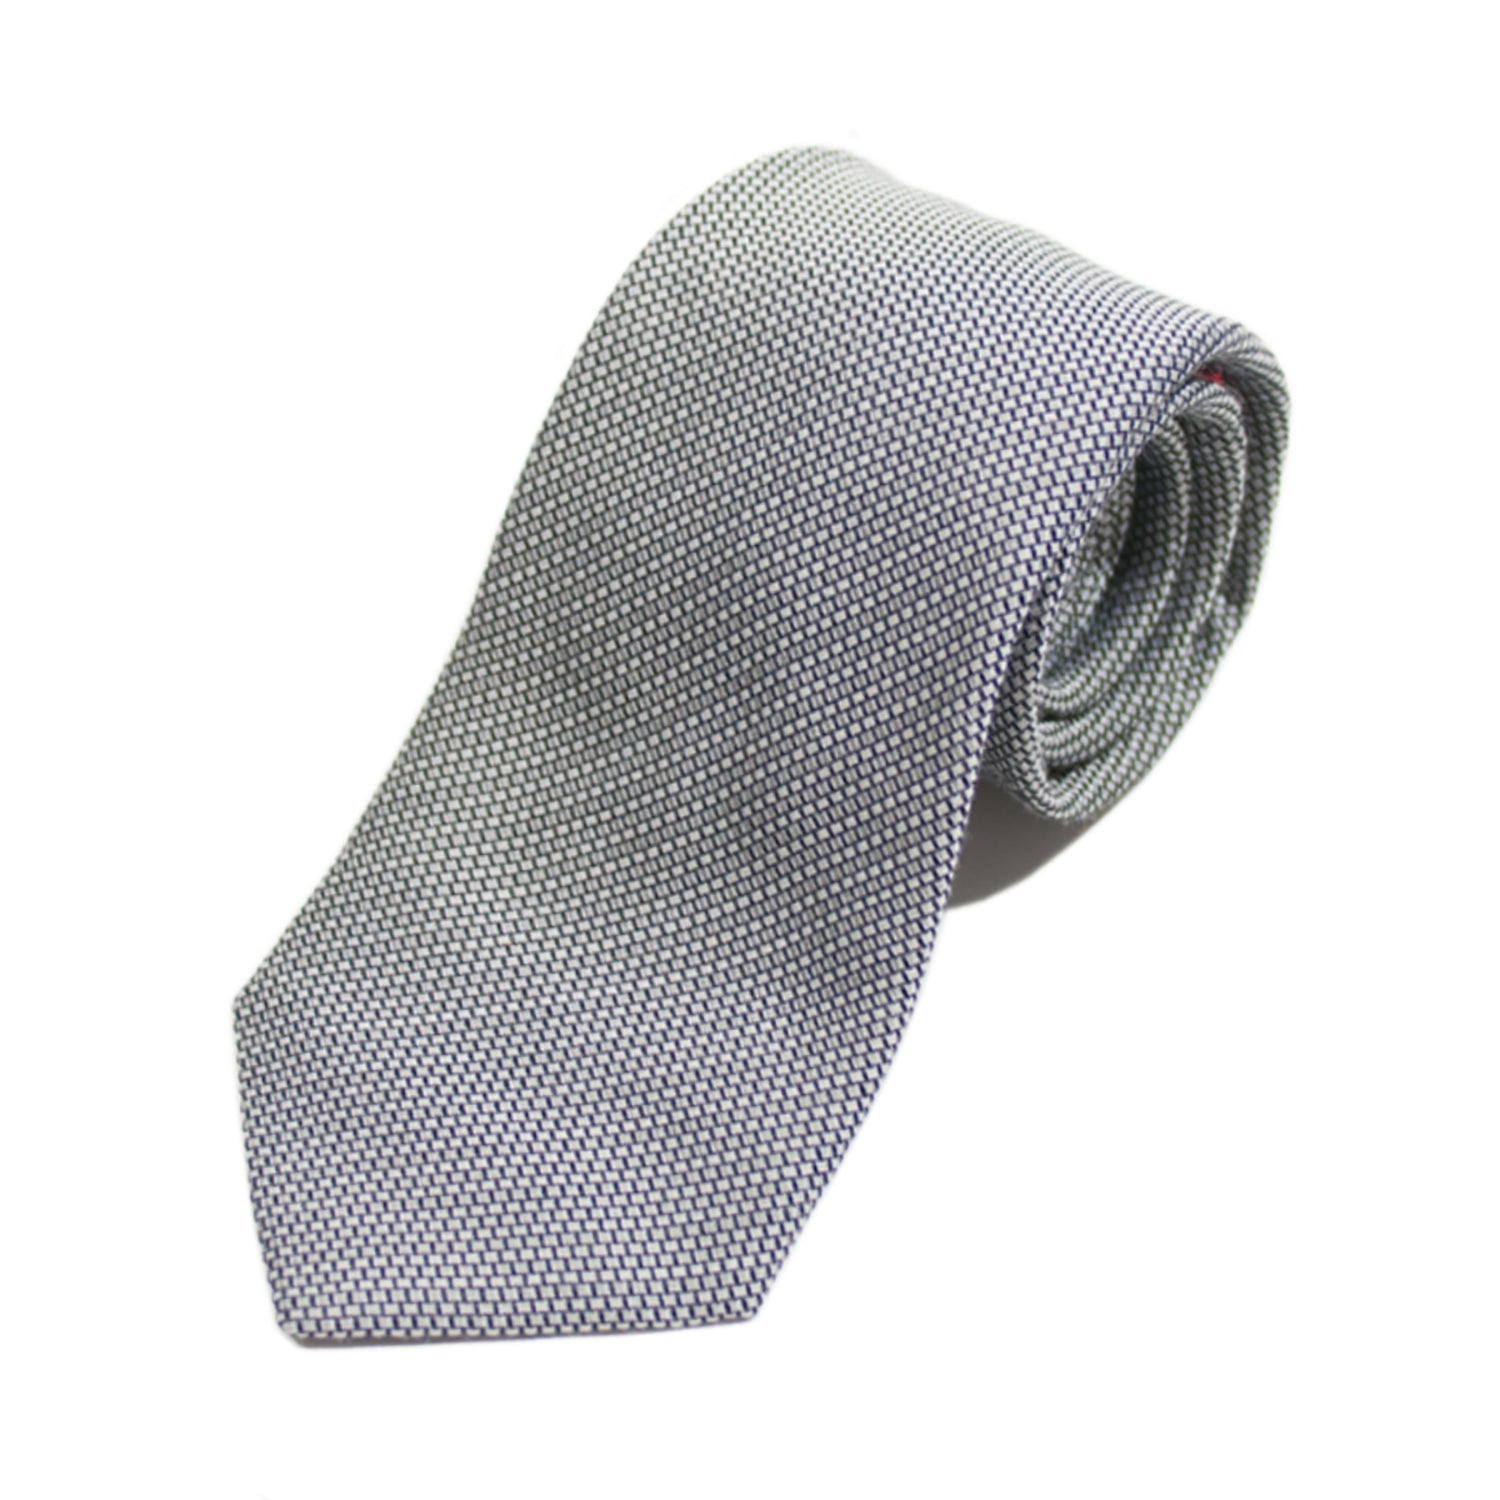 Altea Milano Grey Micro Patterned Italian Silk Tie